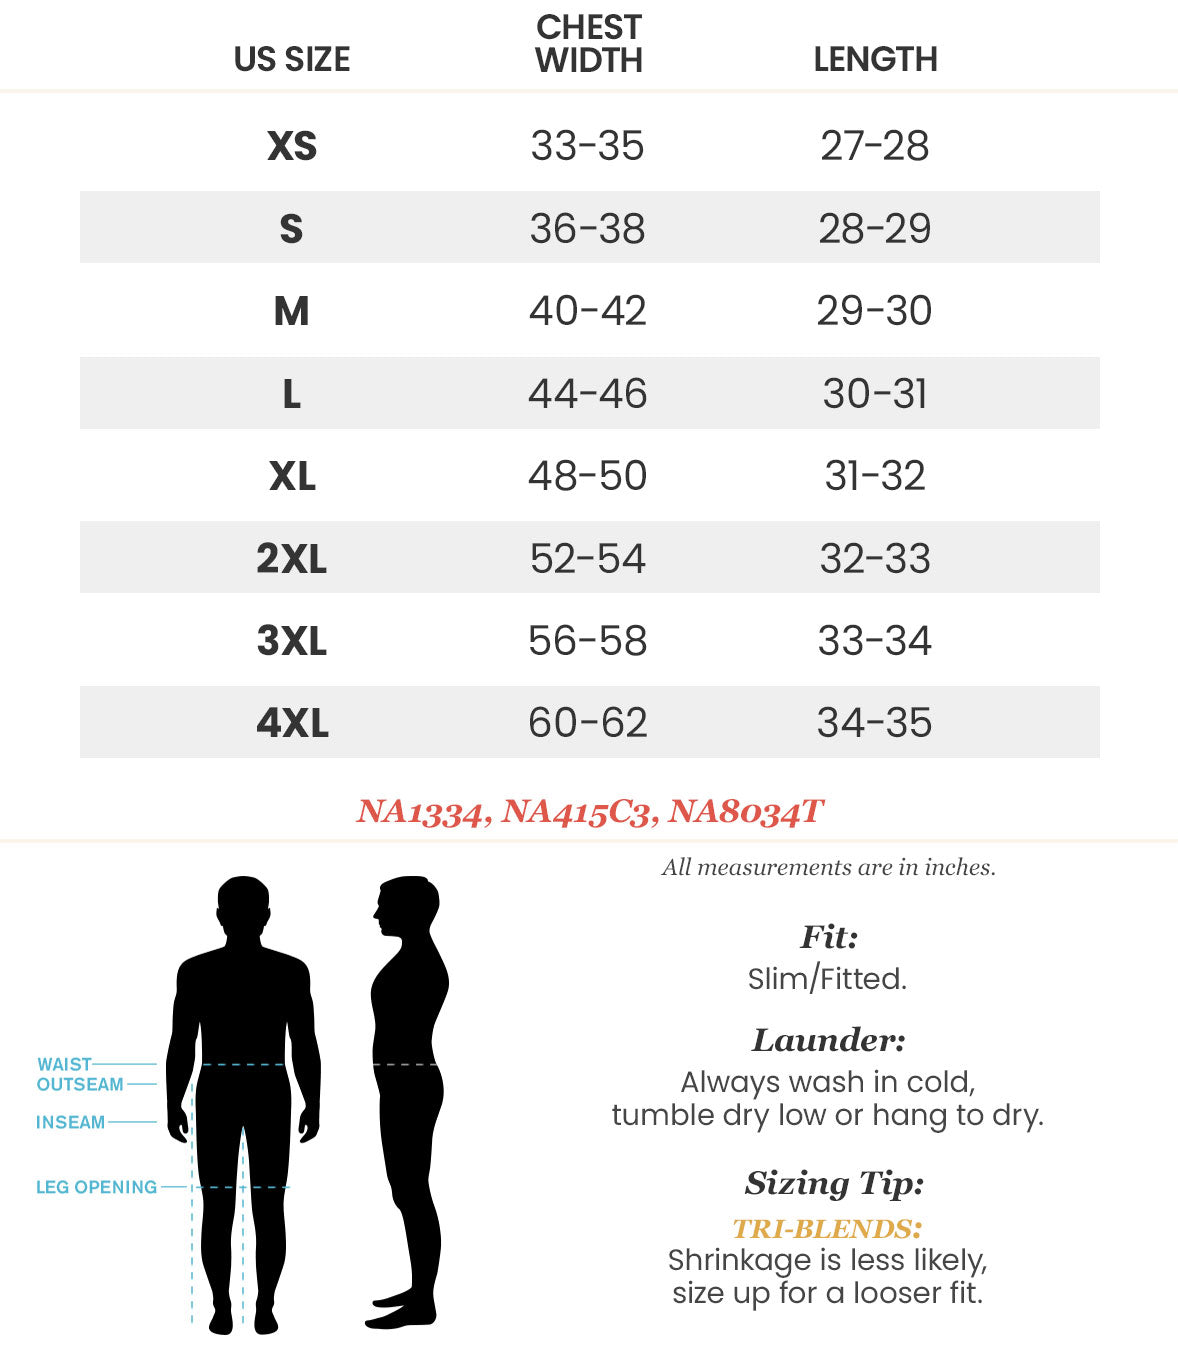 NA1334 Mens Graphic T-Shirt Size Chart